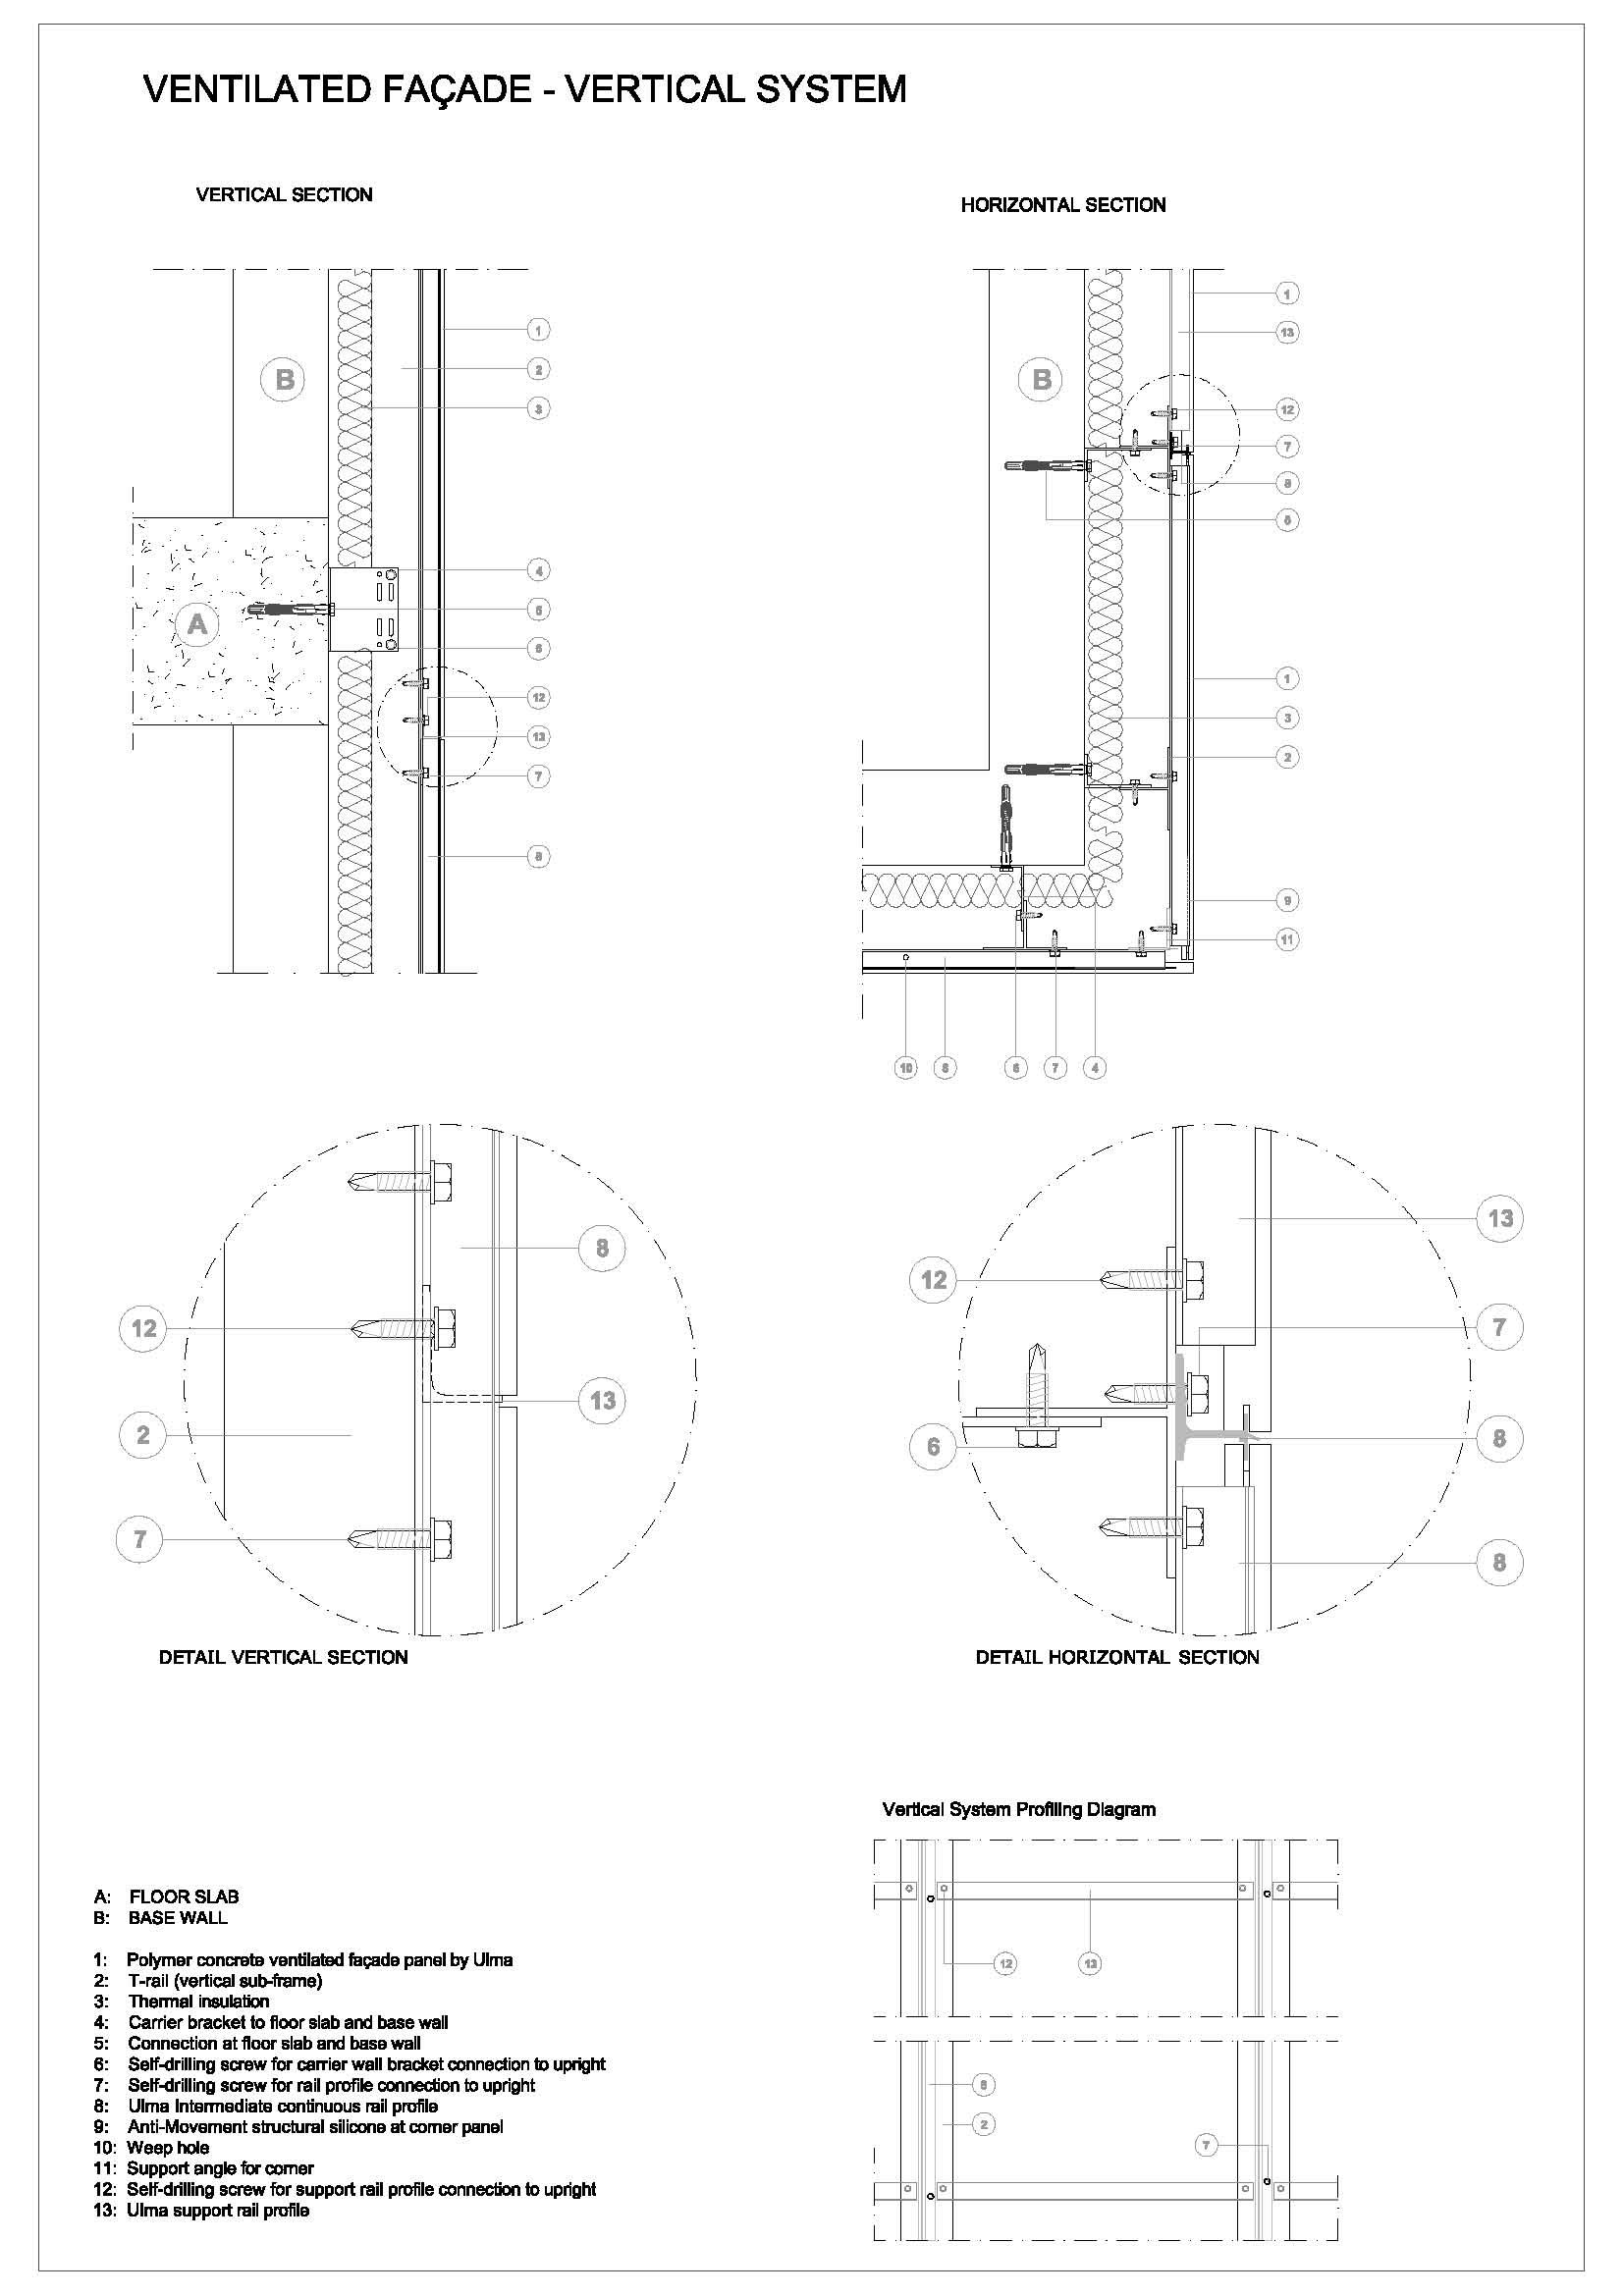 Vertical System Of Ventilated Facades By Ulma